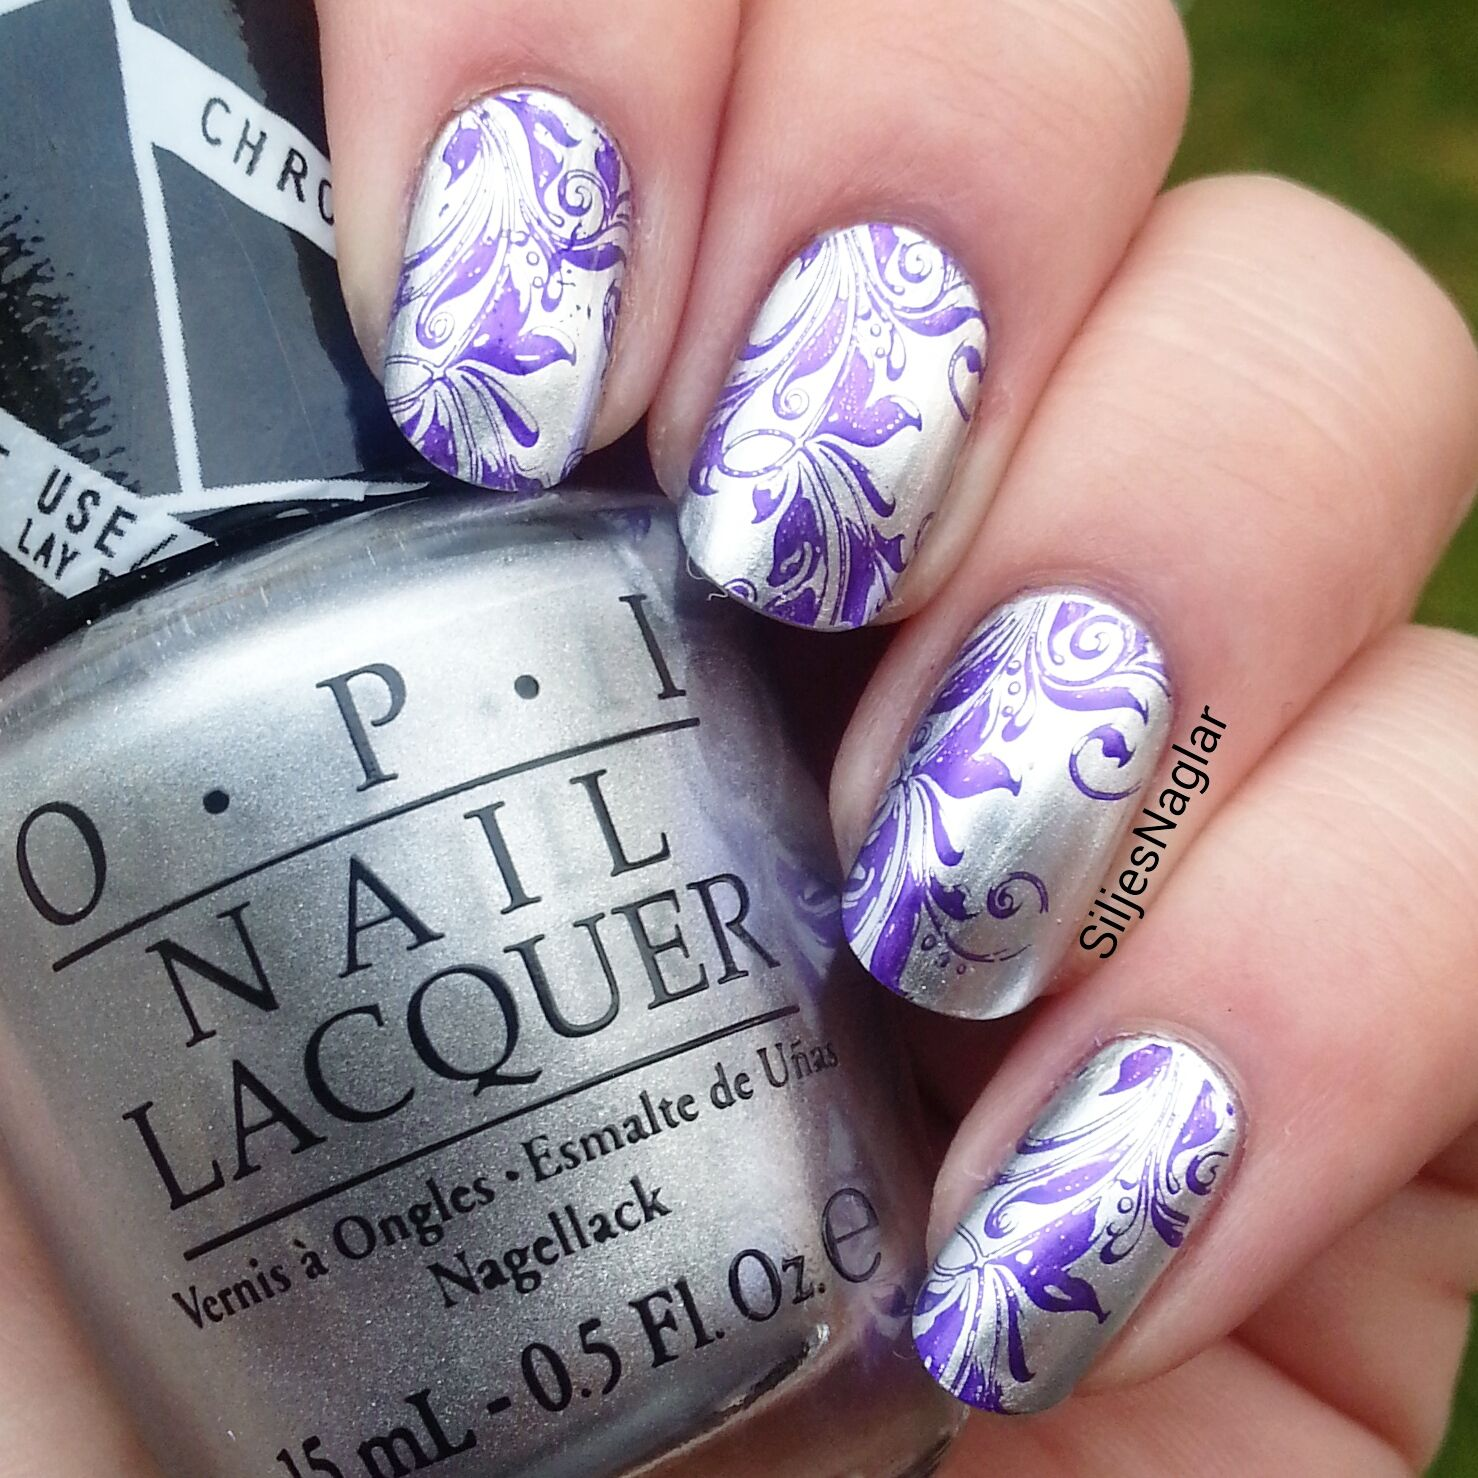 Opi Push and shove with purple stamping nail art.